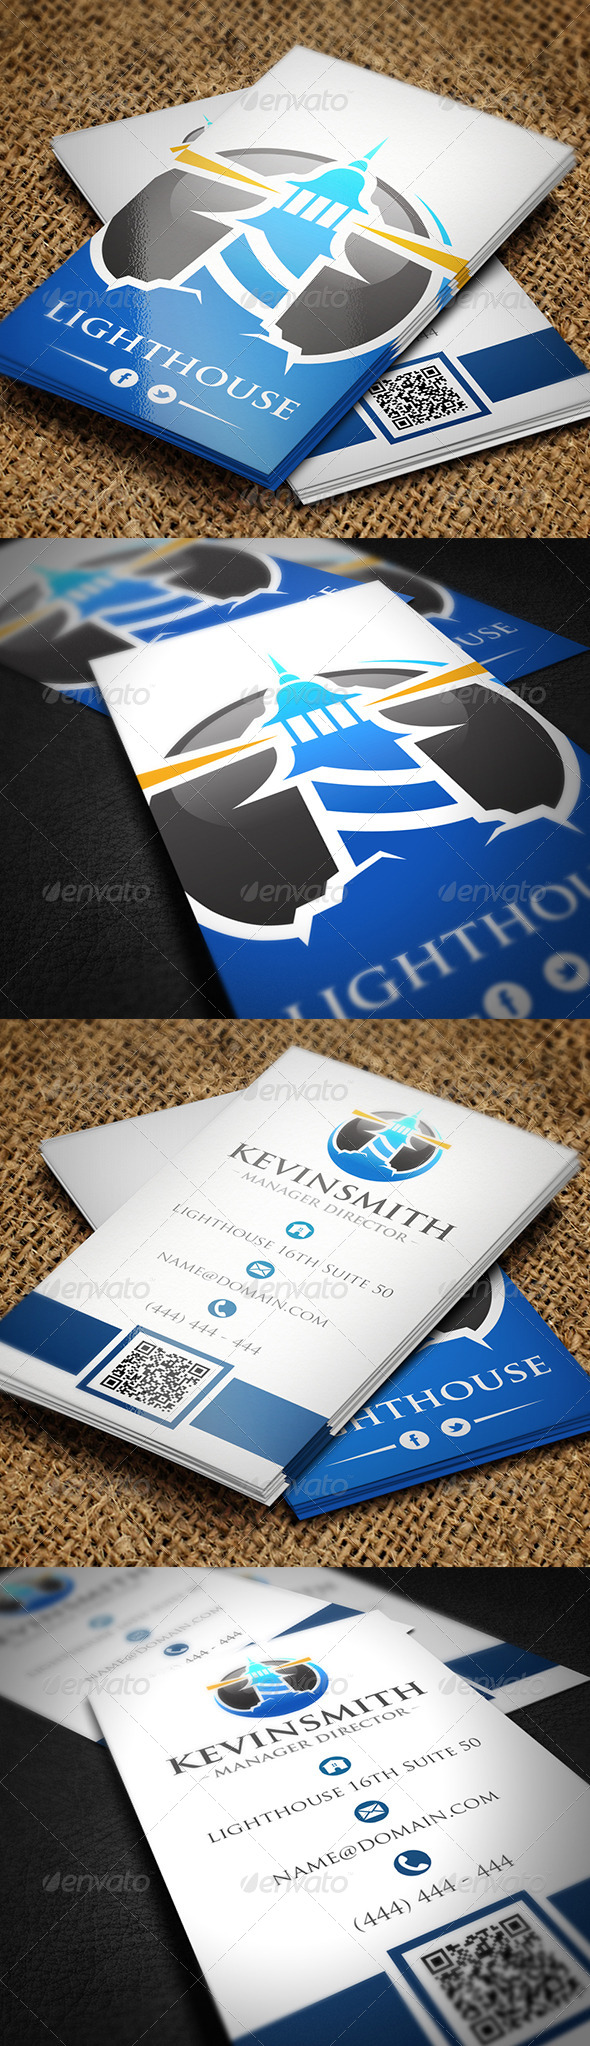 Lighthouse business card by bosstwinsmusic graphicriver lighthouse business card colourmoves